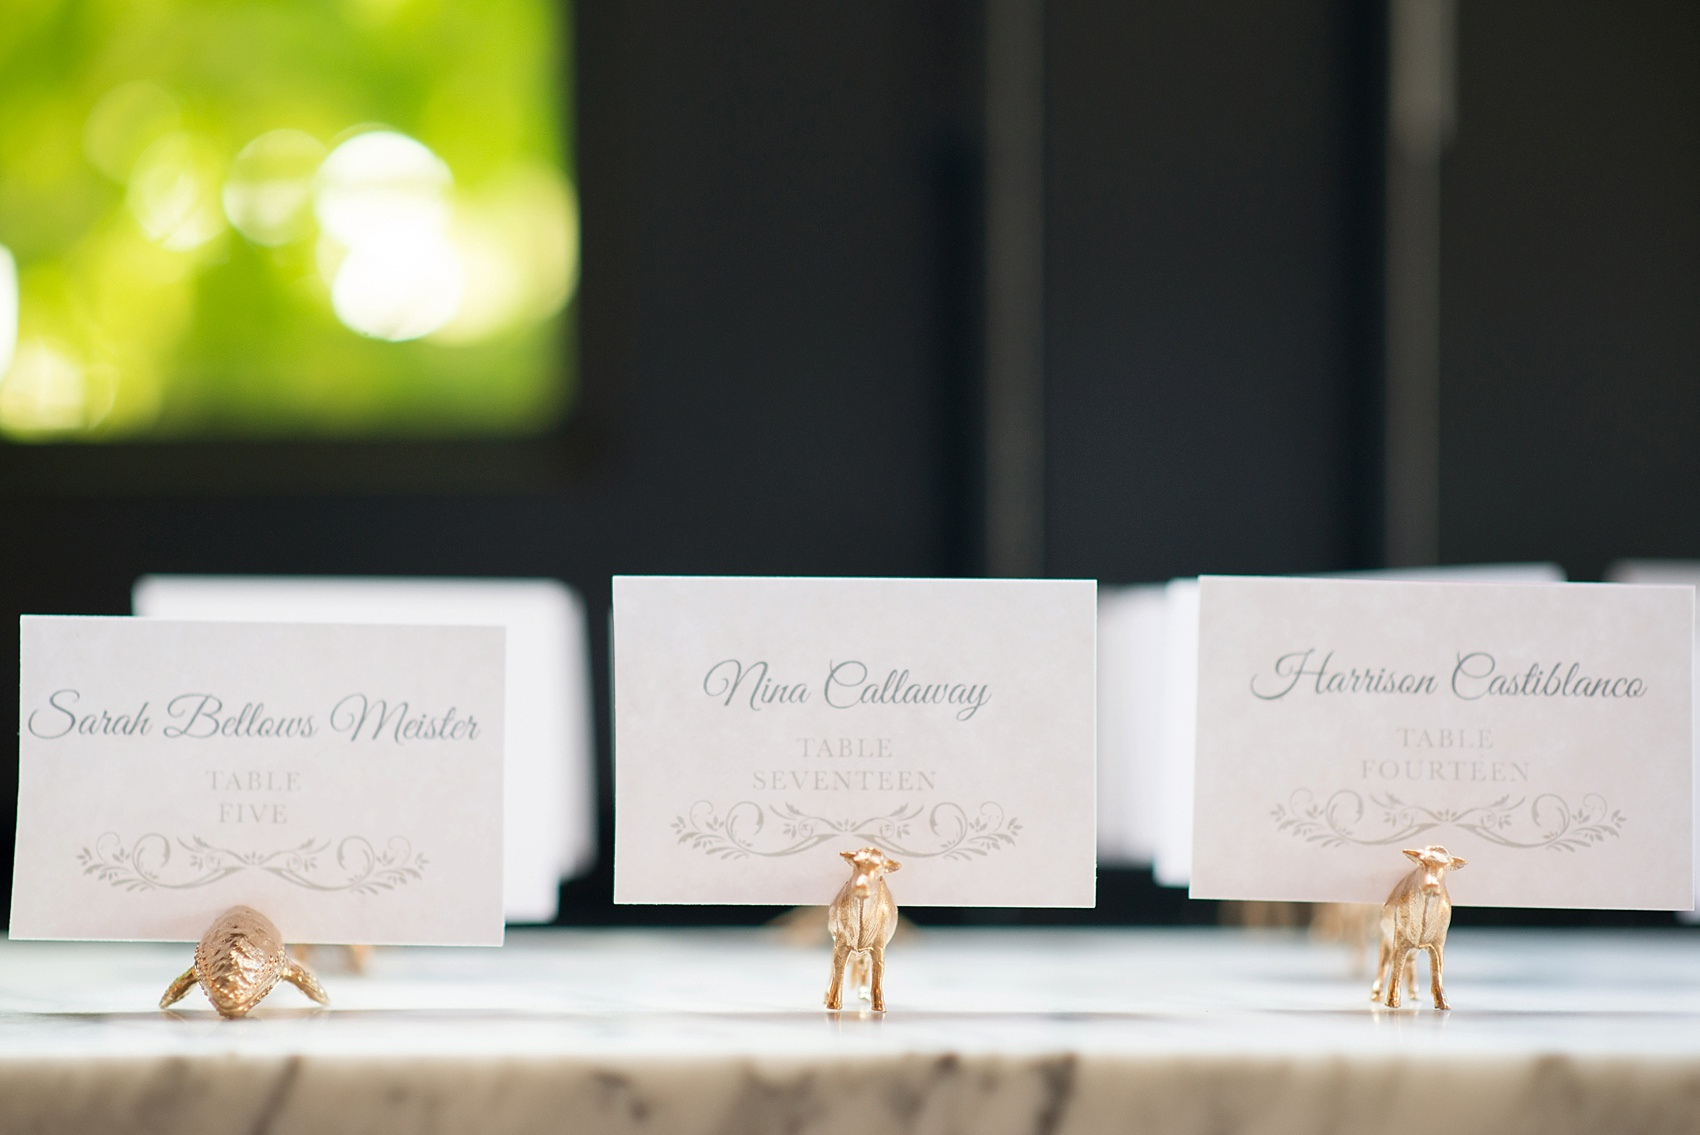 501 Union lesbian wedding gold animal card holders. Photos by Mikkel Paige Photography, in Brooklyn, NYC. Planning by Ashley M Chamblin Events.